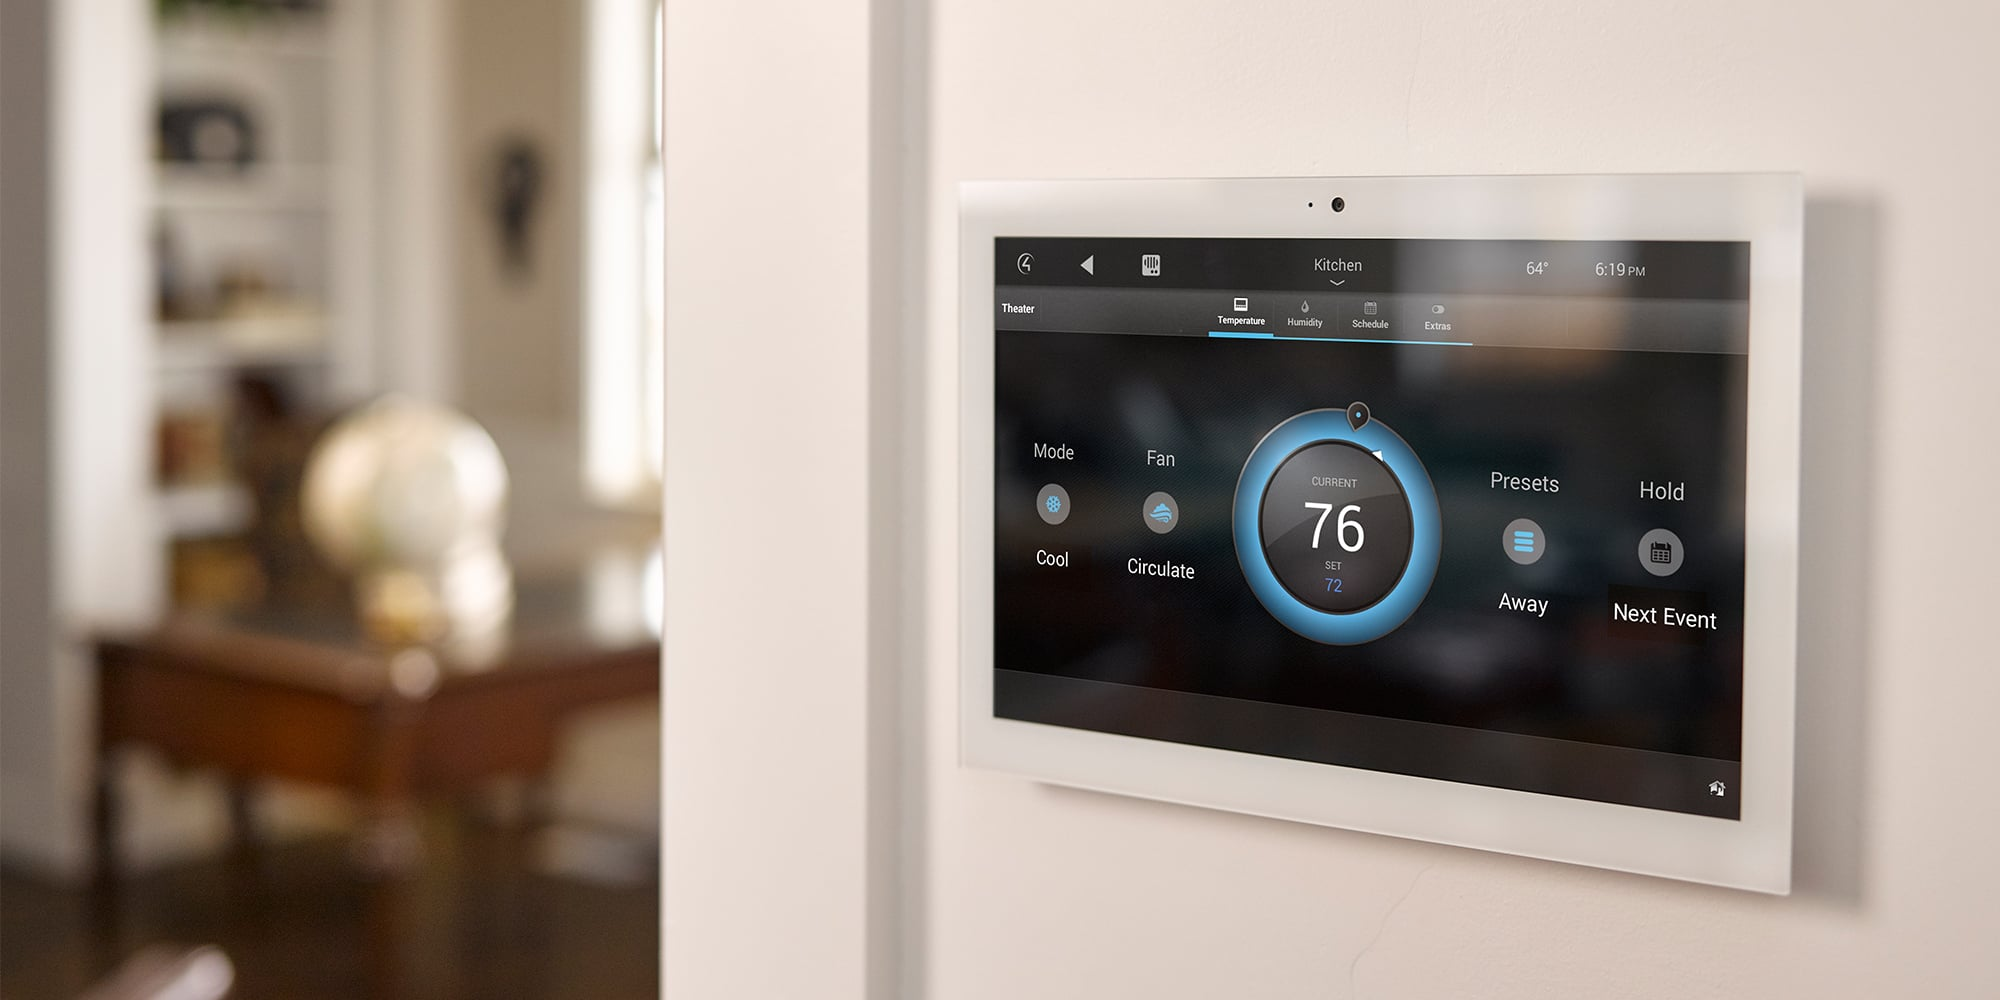 Artboard-2-5 Control4: What's It Like Living In An Automated Bespoke Smart Home